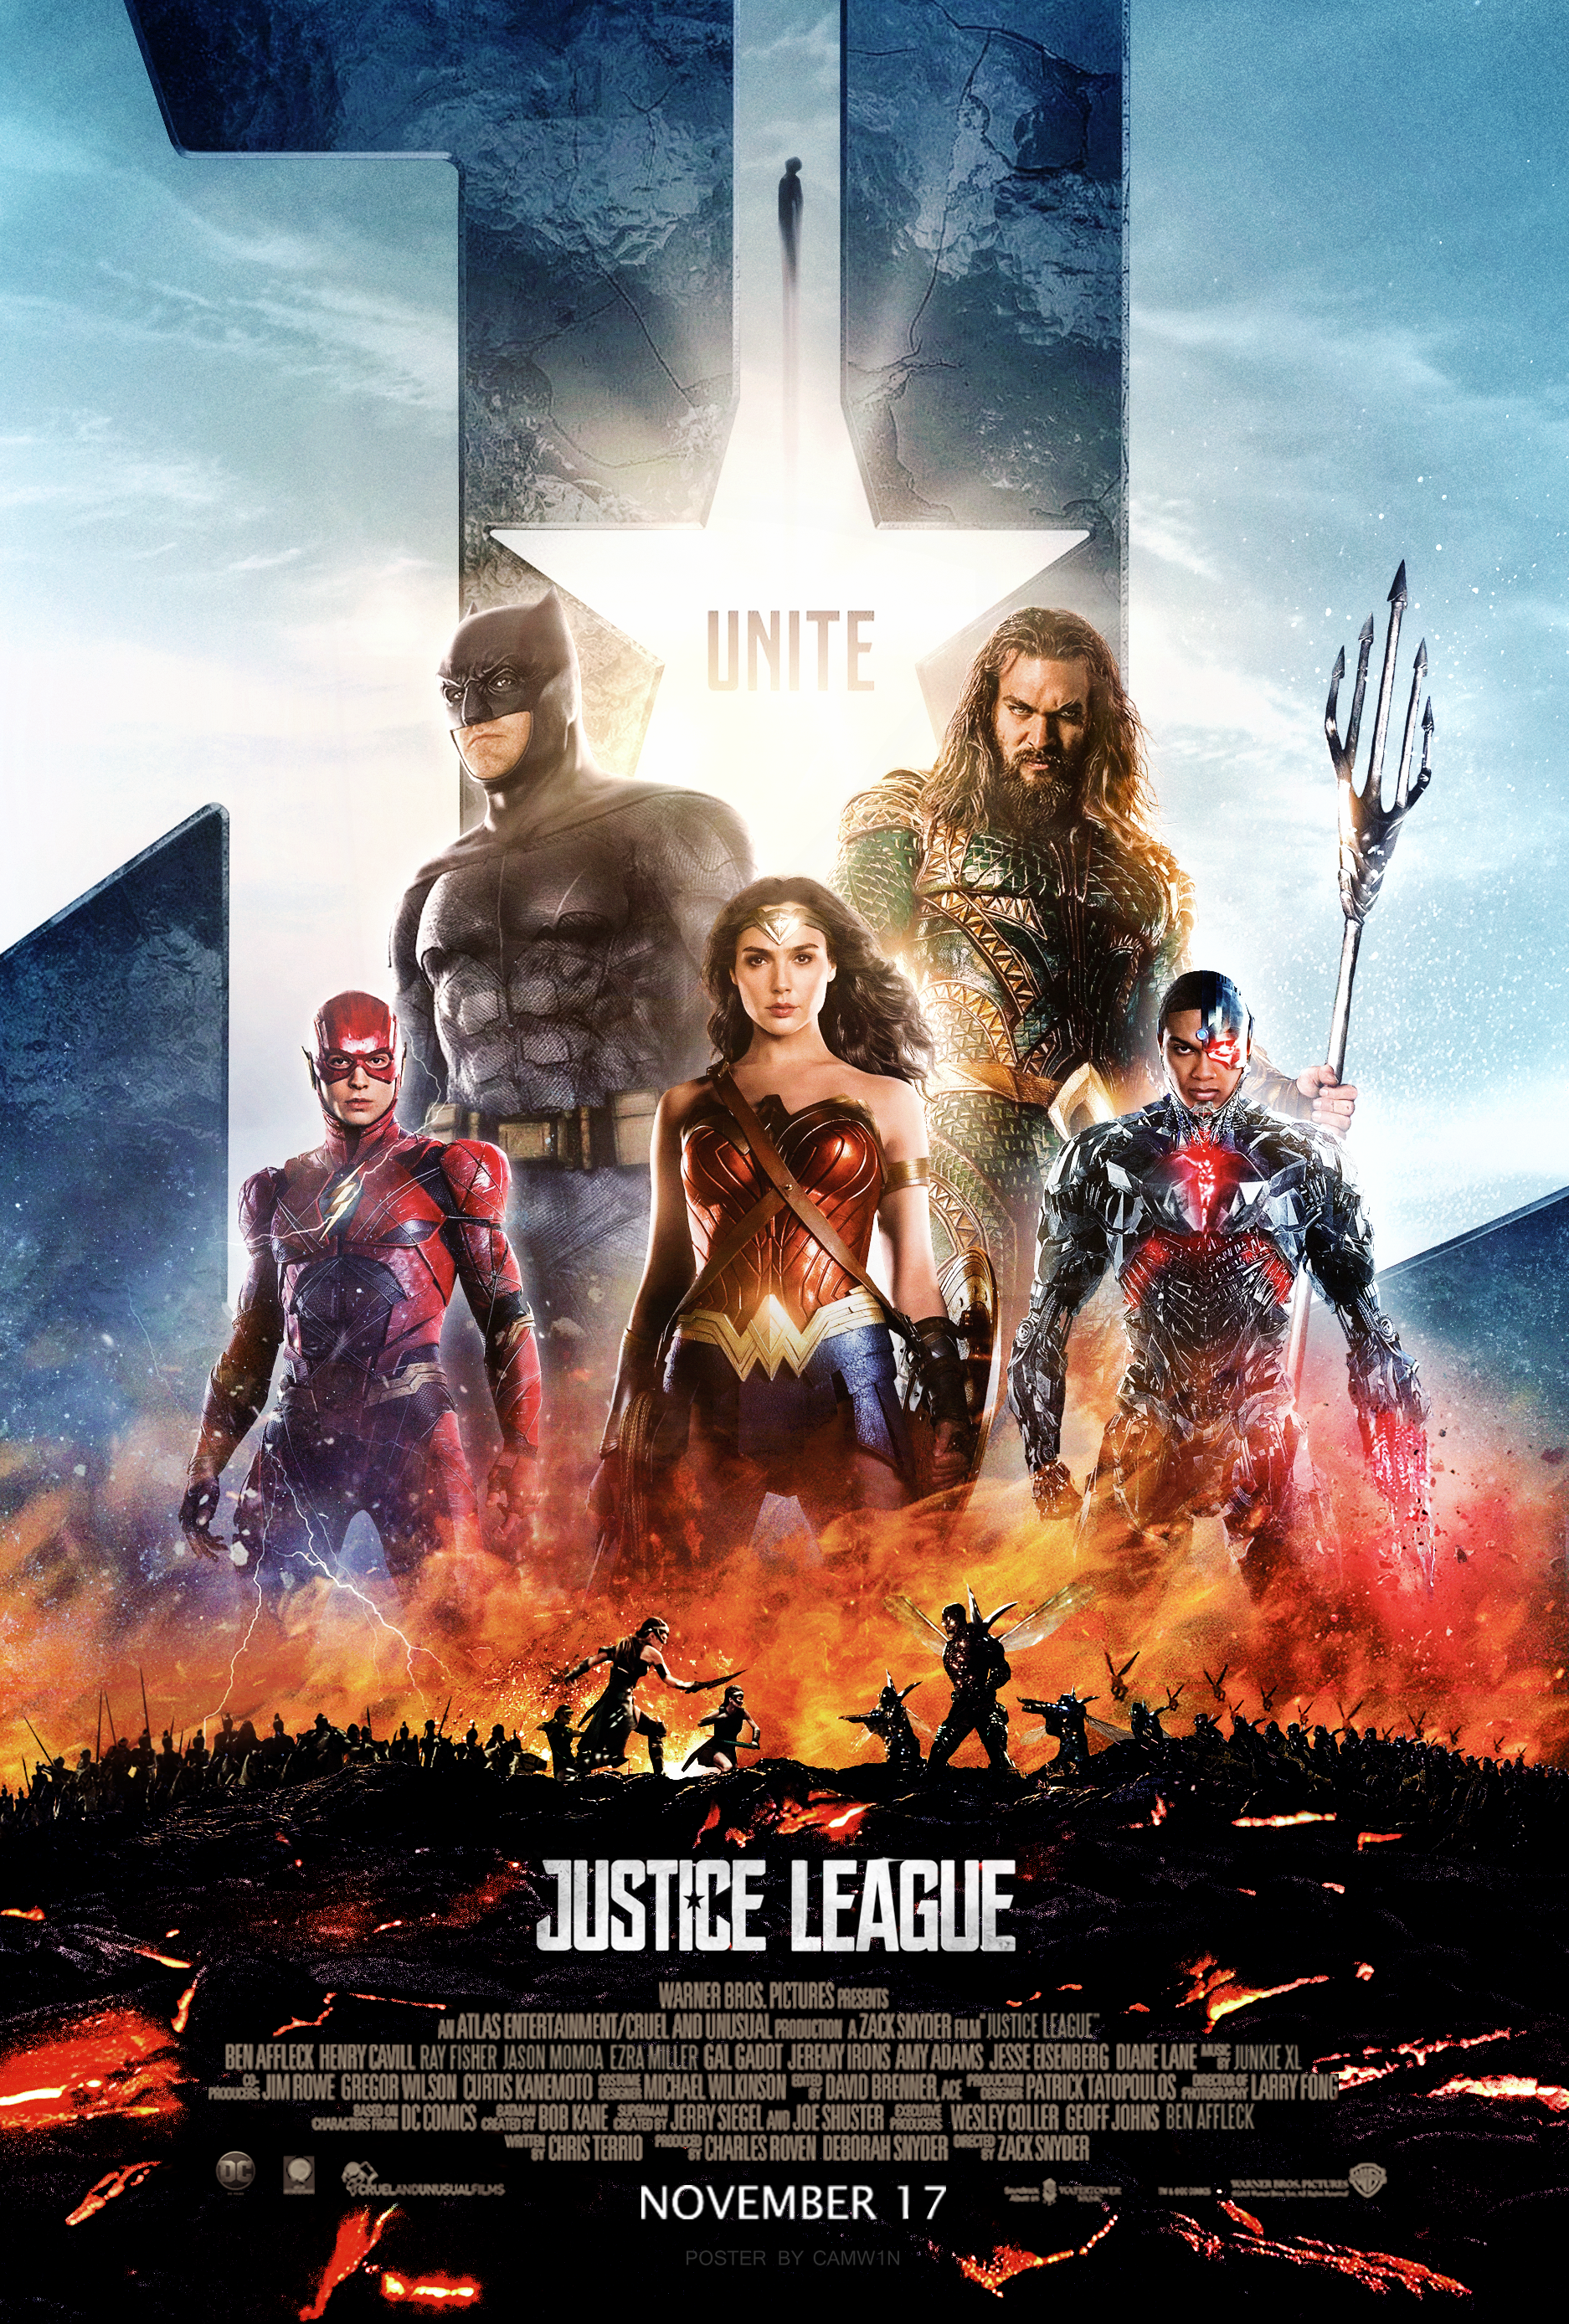 Justice League 2017 Poster 3 By Camw1n On Deviantart